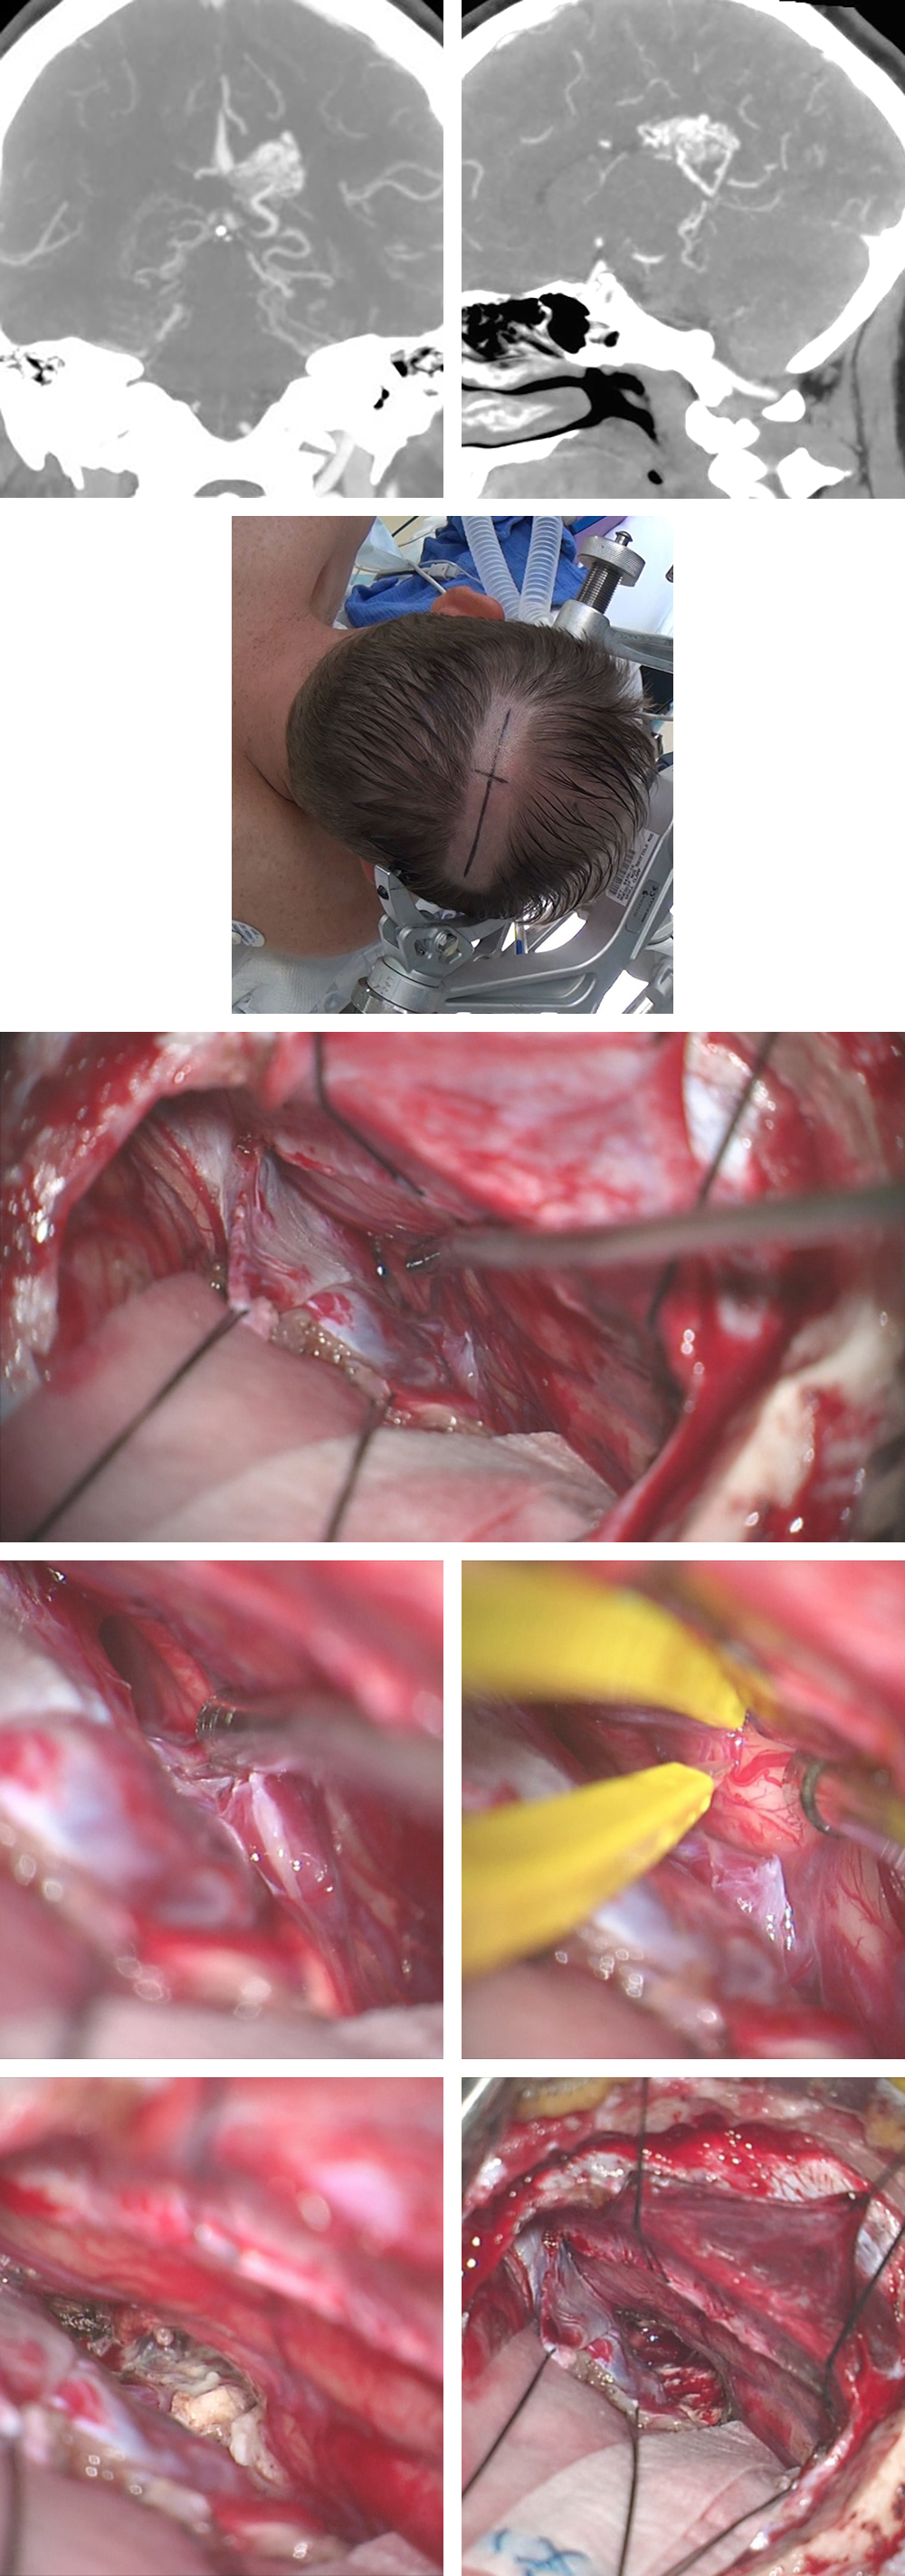 Figure 14: The use of the PITTA for resection of an AVM on the medial atrial wall and extending into the atrium is shown (top images). The patient was placed in the lateral position with the head turned 45 degrees toward the floor (second row). The right-sided posterior interhemispheric transfalcine approach is shown. Note the straight sinus within the leaflets of the falcotentorial dura just lateral to the tip of the suction device (third row). The primary draining vein is immediately identified over the corpus callosum and a cortical incision in the precuneus is made (fourth row). The AVM is skeletonized and the atrium is entered at the conclusion of nidal circumdissection (bottom row).